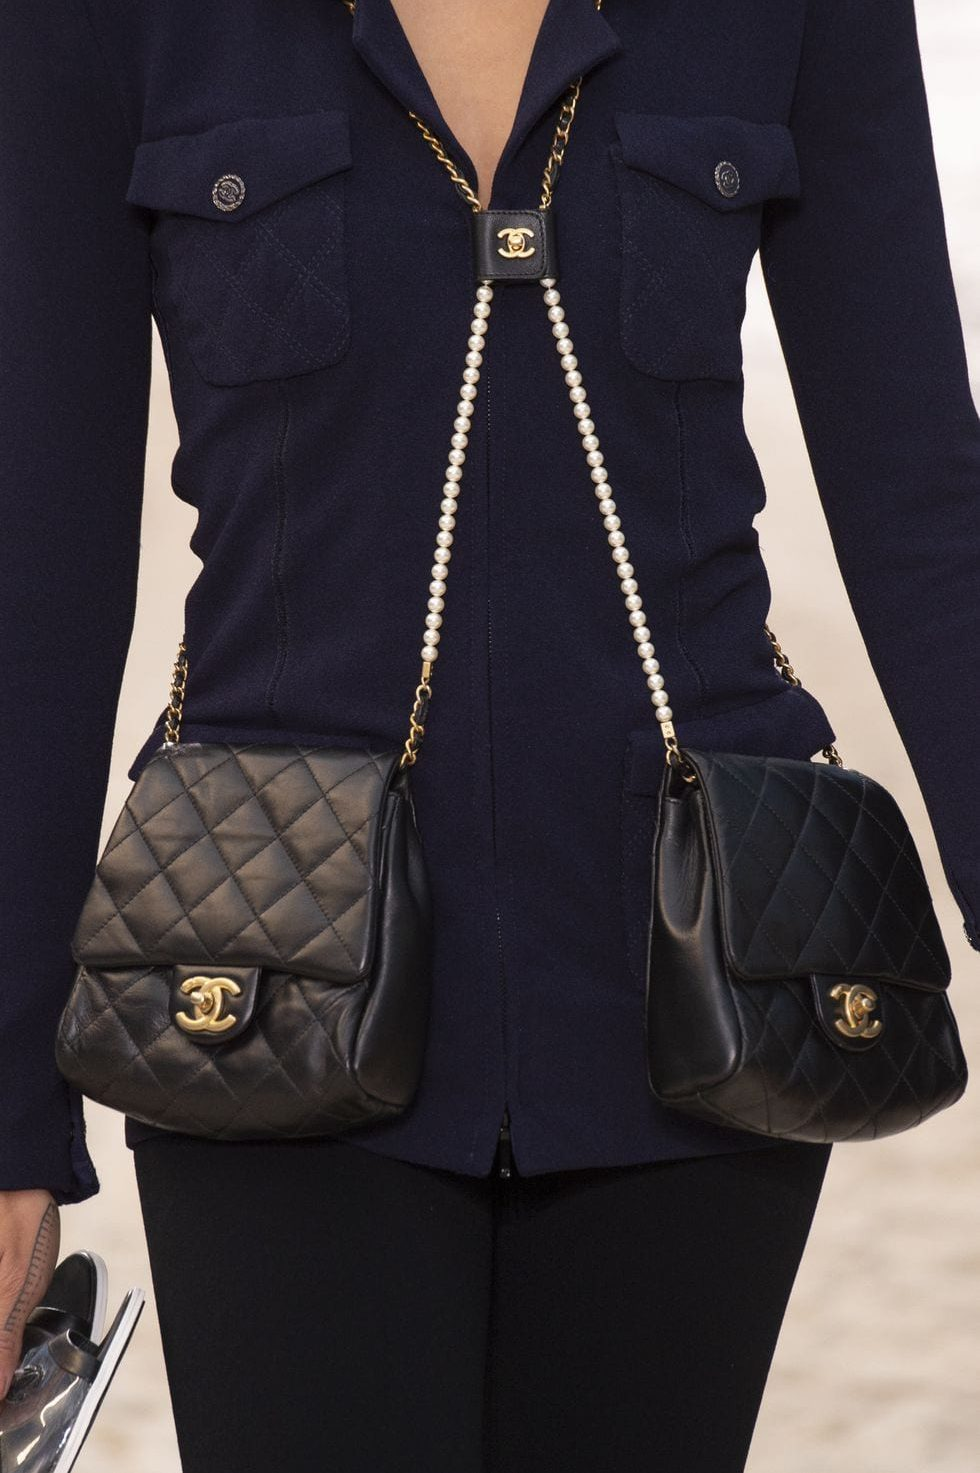 chanel-clp-rs19-6548-1538511786